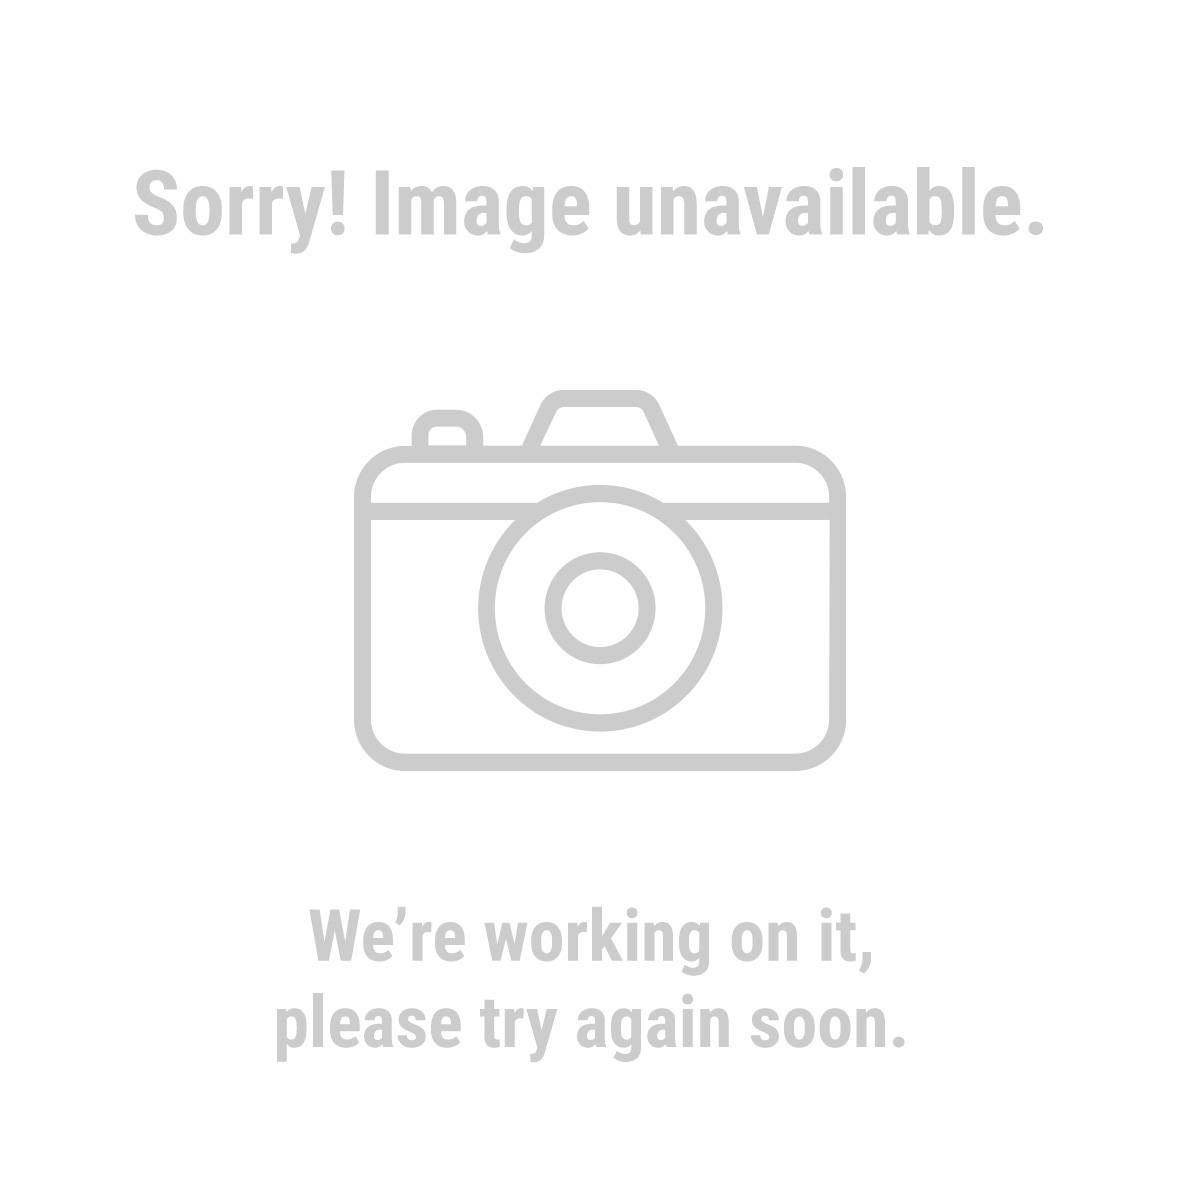 "Warrior 68462 10 Piece 2"" PH2 Phillips Insert Bits"